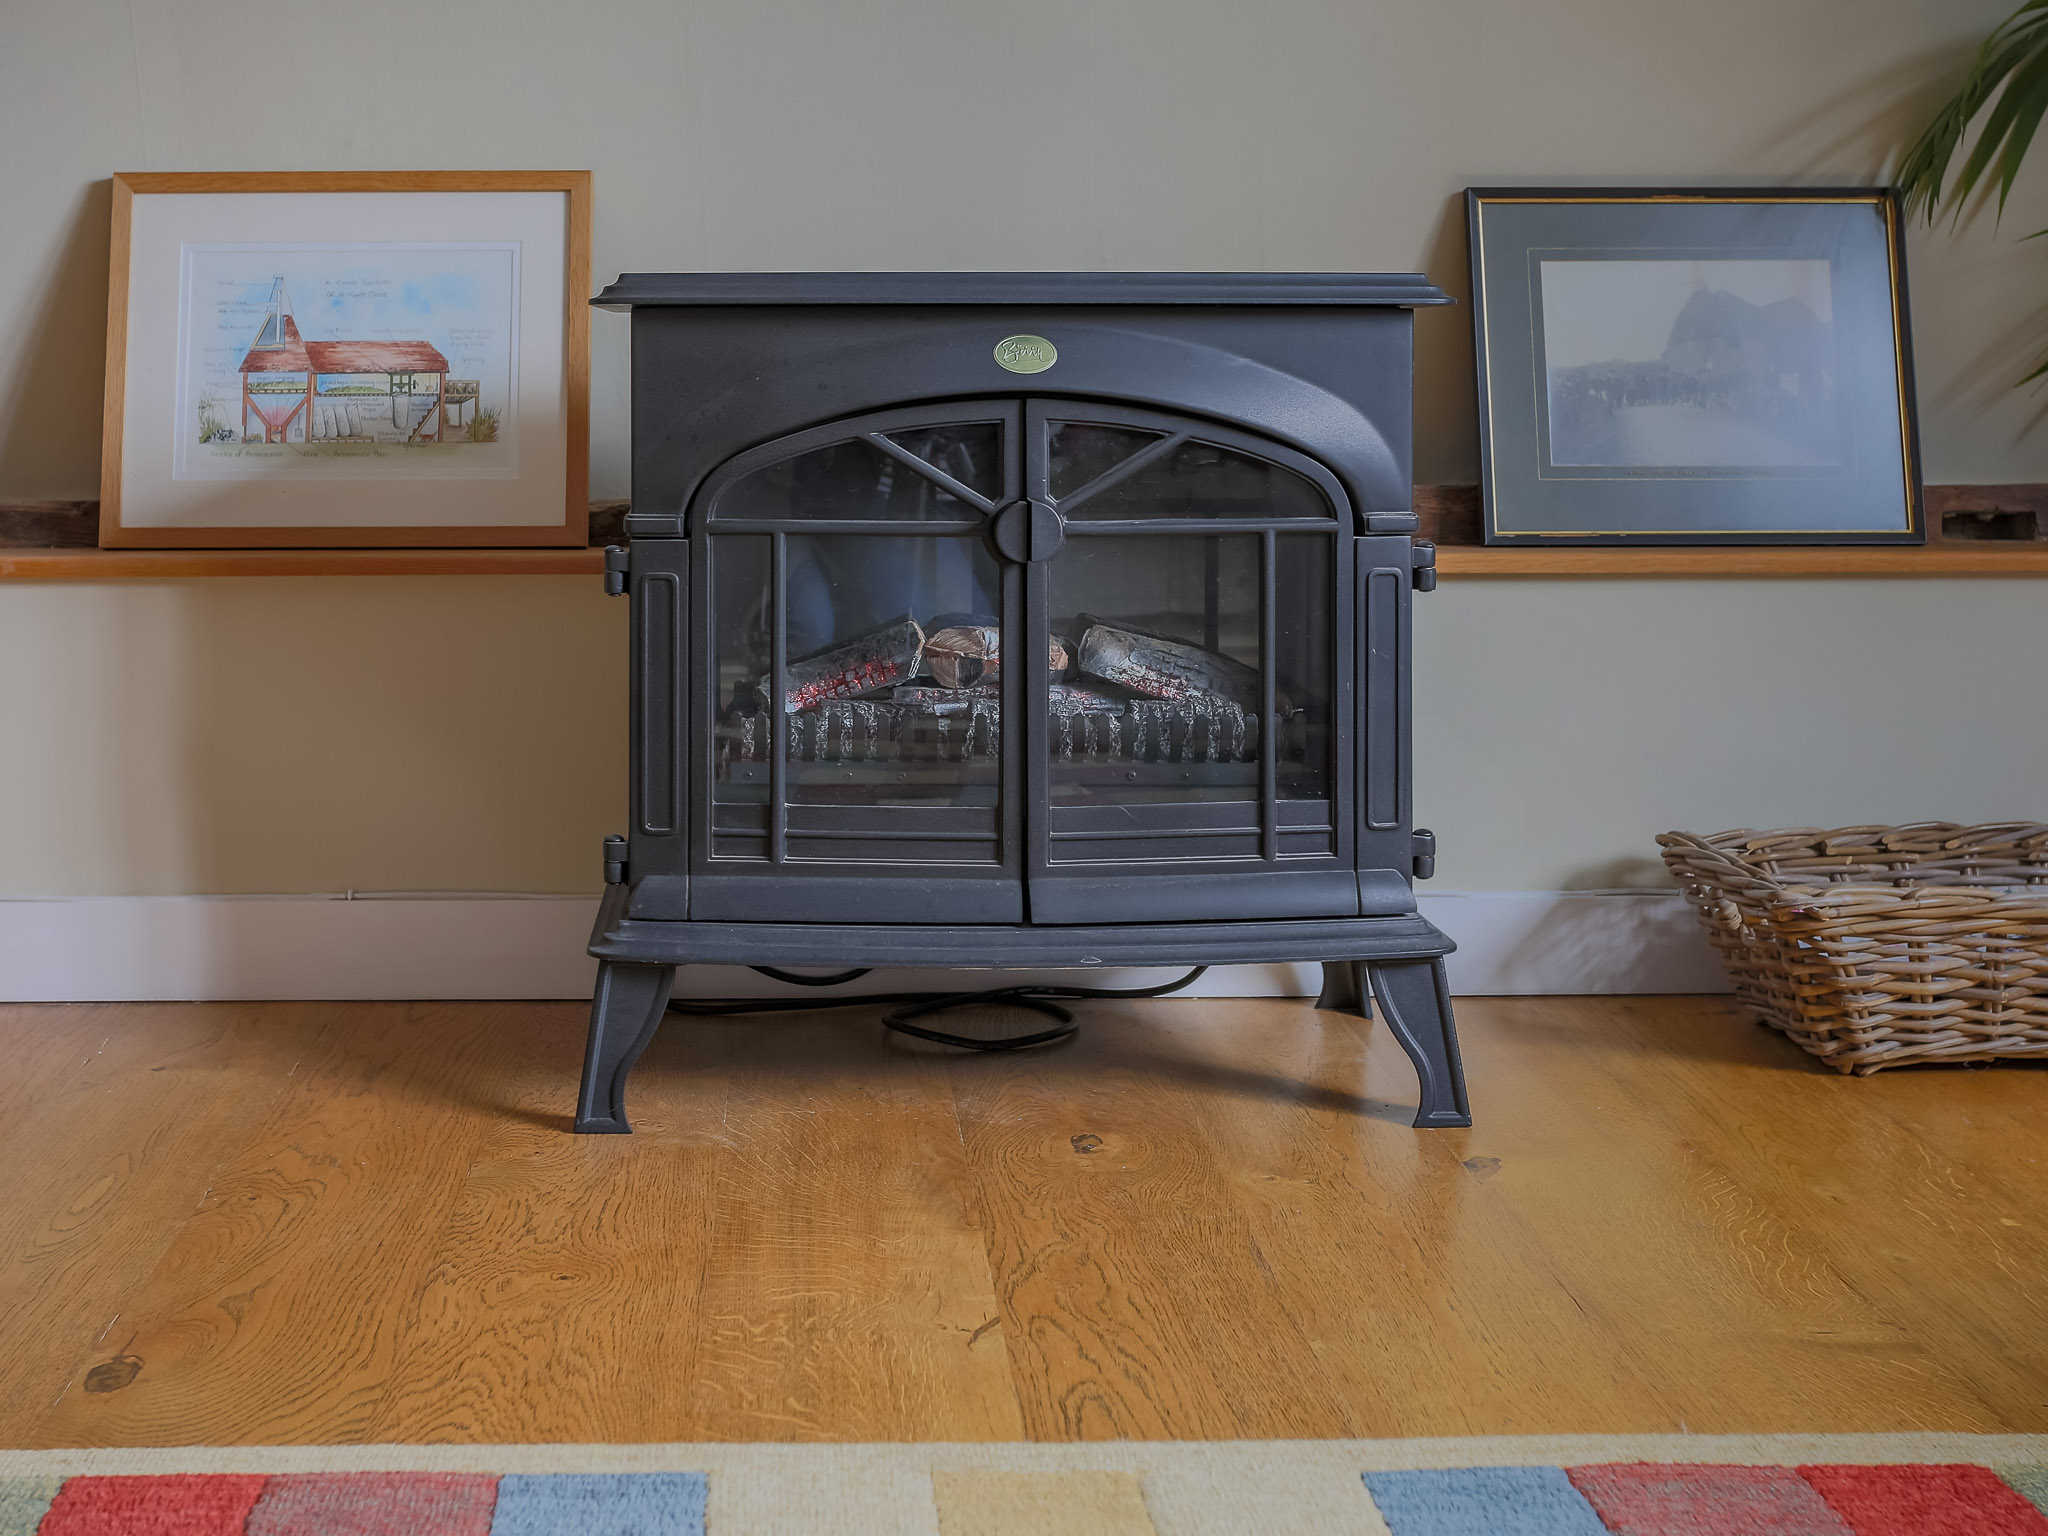 The oast is well insulated with central heating throughout, with an extra electric fire adds cosiness